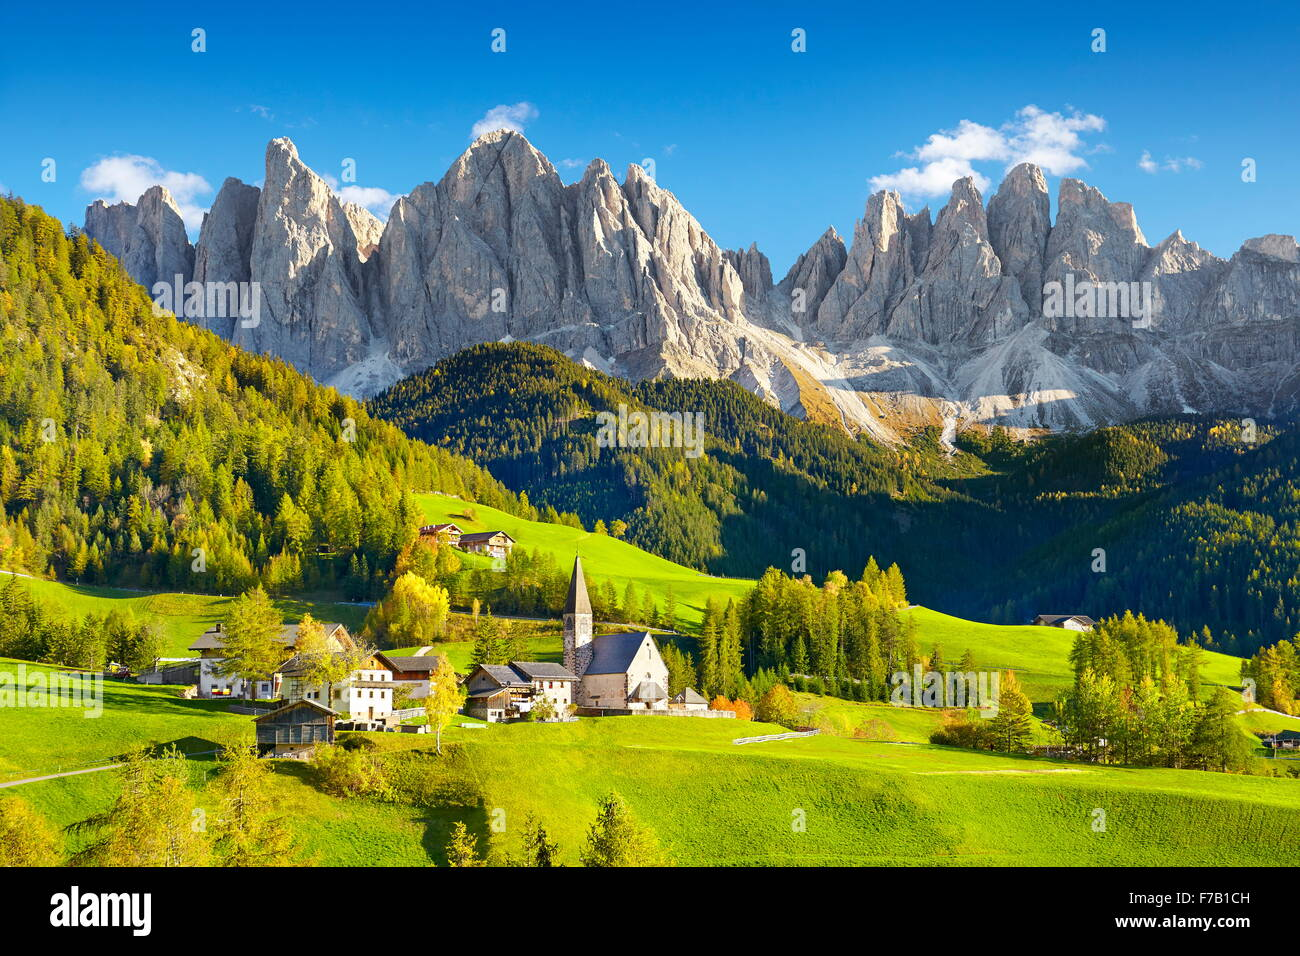 Puez Odle Nature Park, Dolomites Mountains, European Alps, South Tyrol, Italy - Stock Image